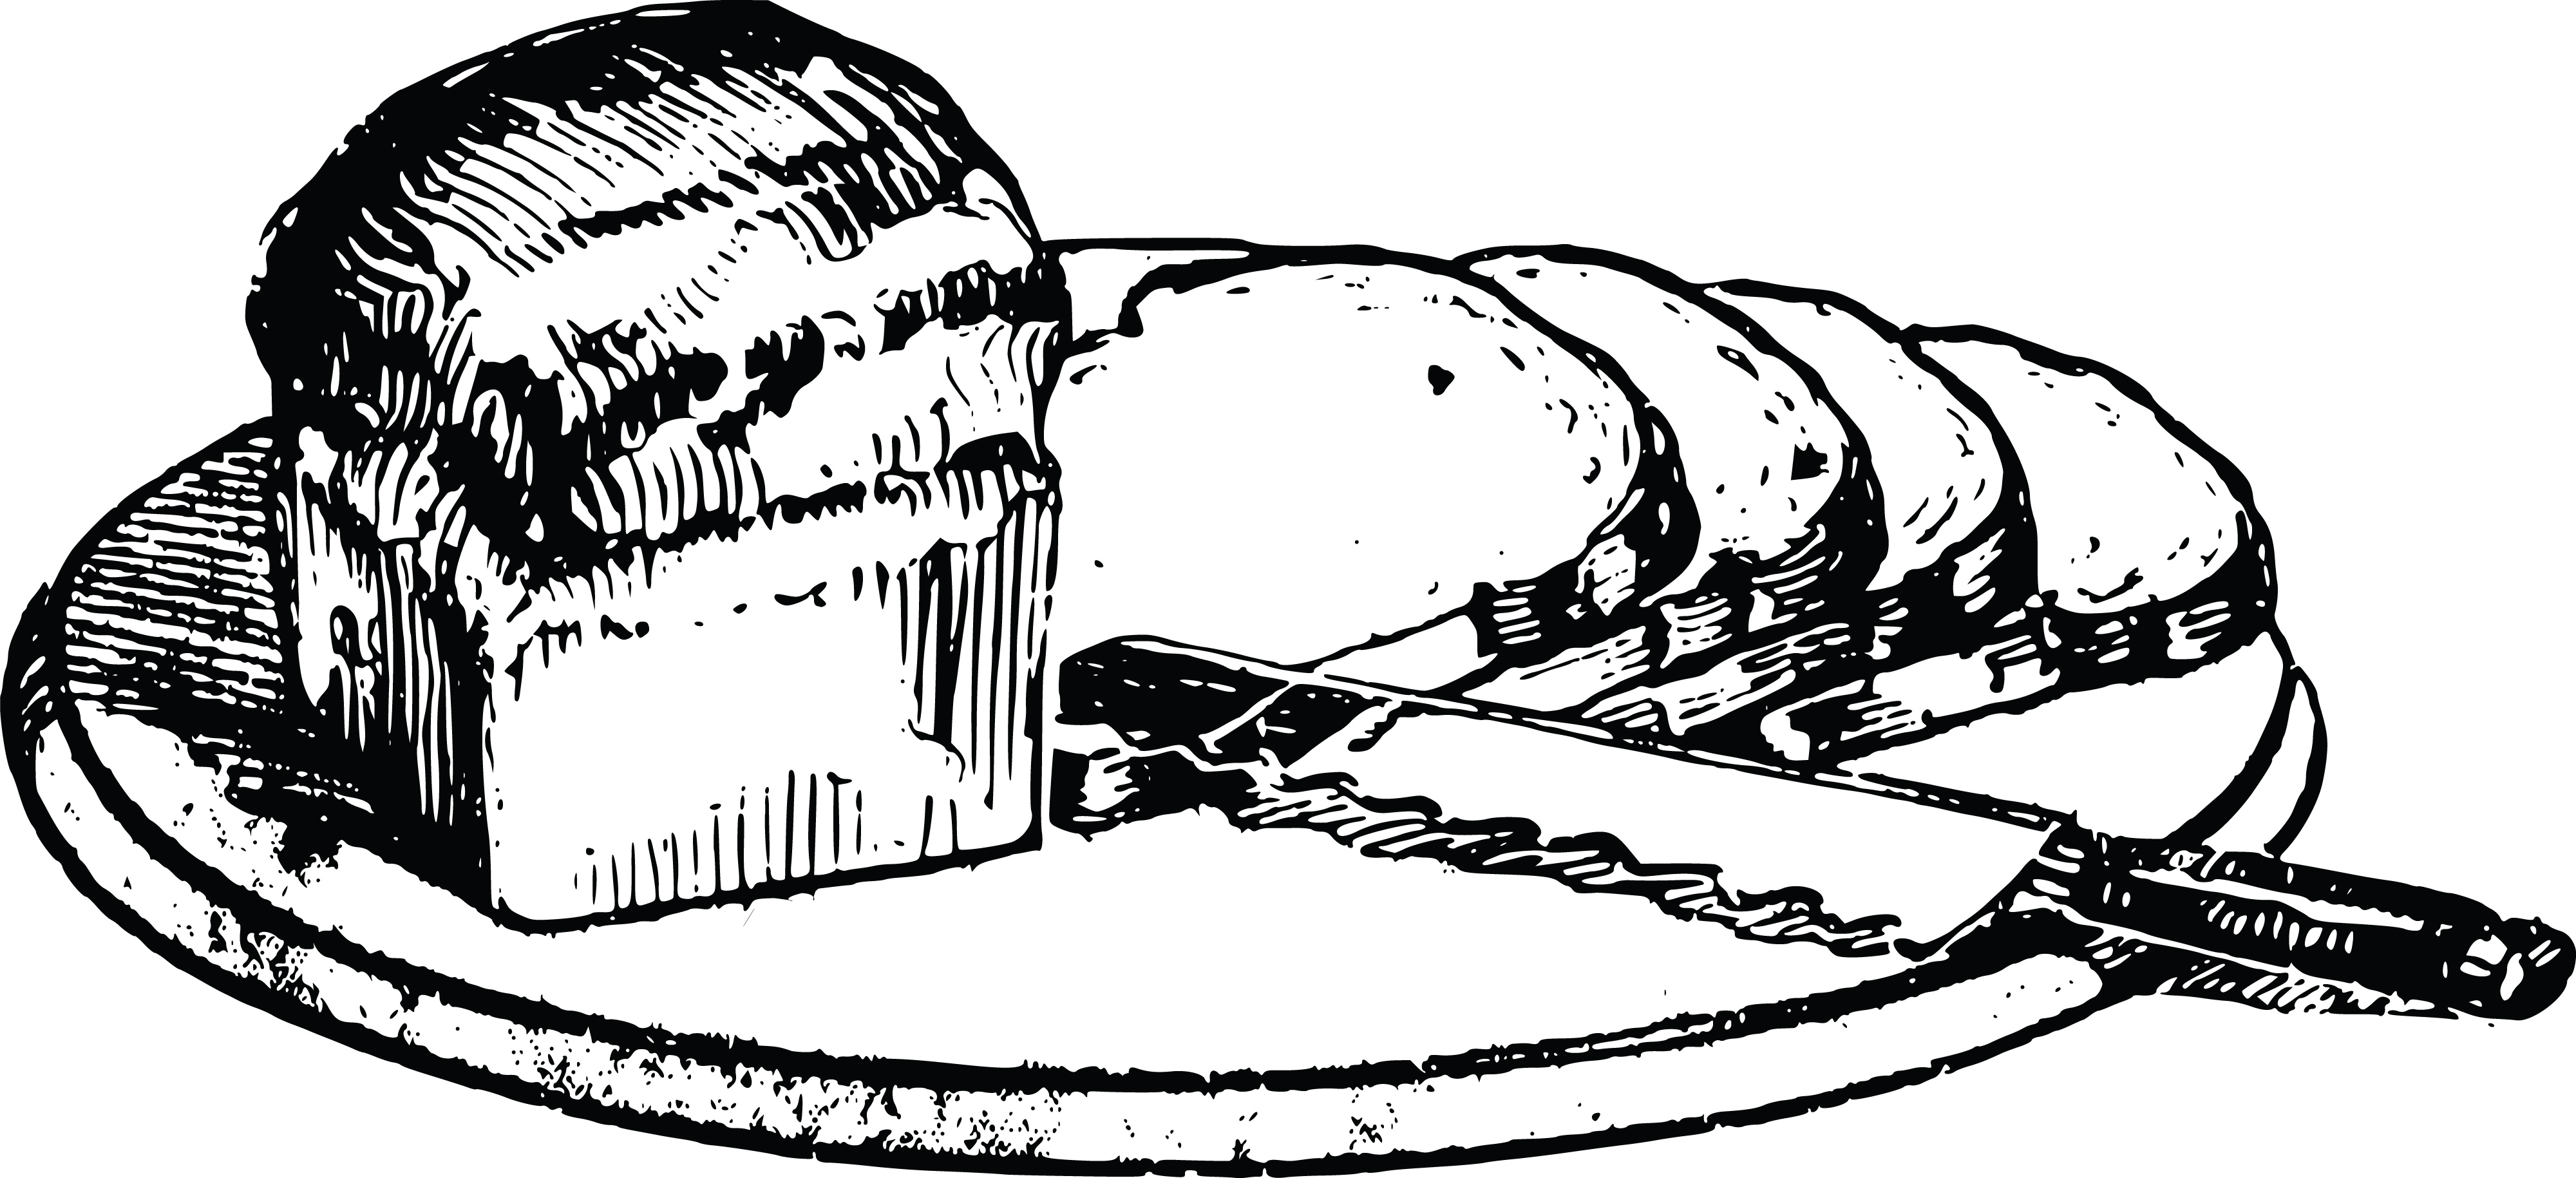 1595 Free Clipart Of Bread further Woman Clipart Image 24039 together with Clipart 9Tz6KnxTE together with Kindergarten Coloring Worksheets as well Taste This. on healthy chef